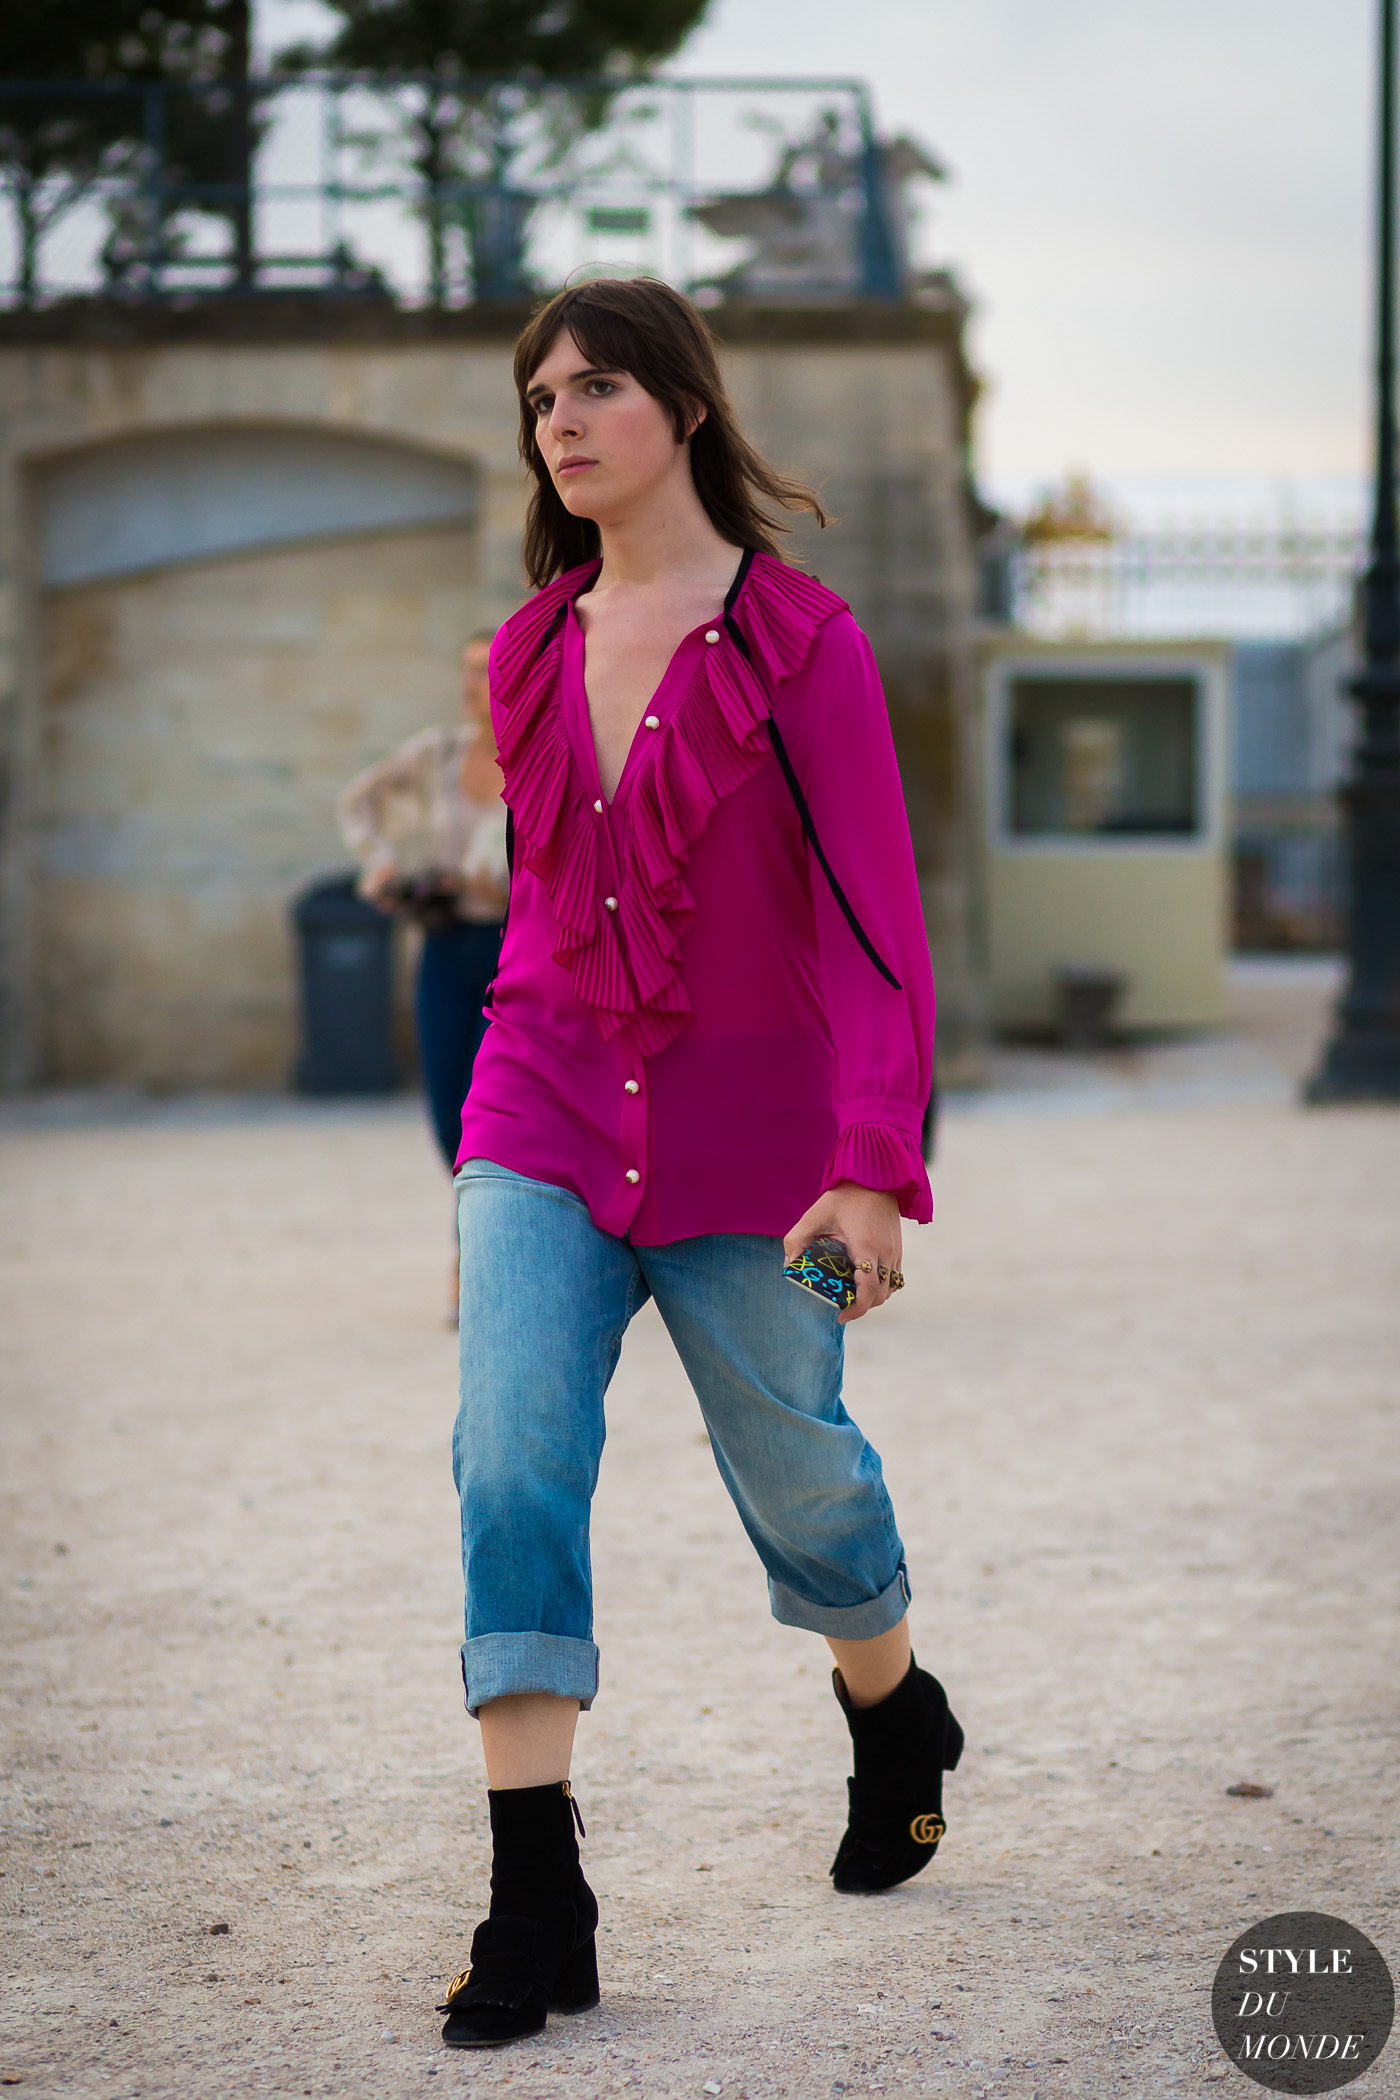 Hari Nef by STYLEDUMONDE Street Style Fashion Photography0E2A4044